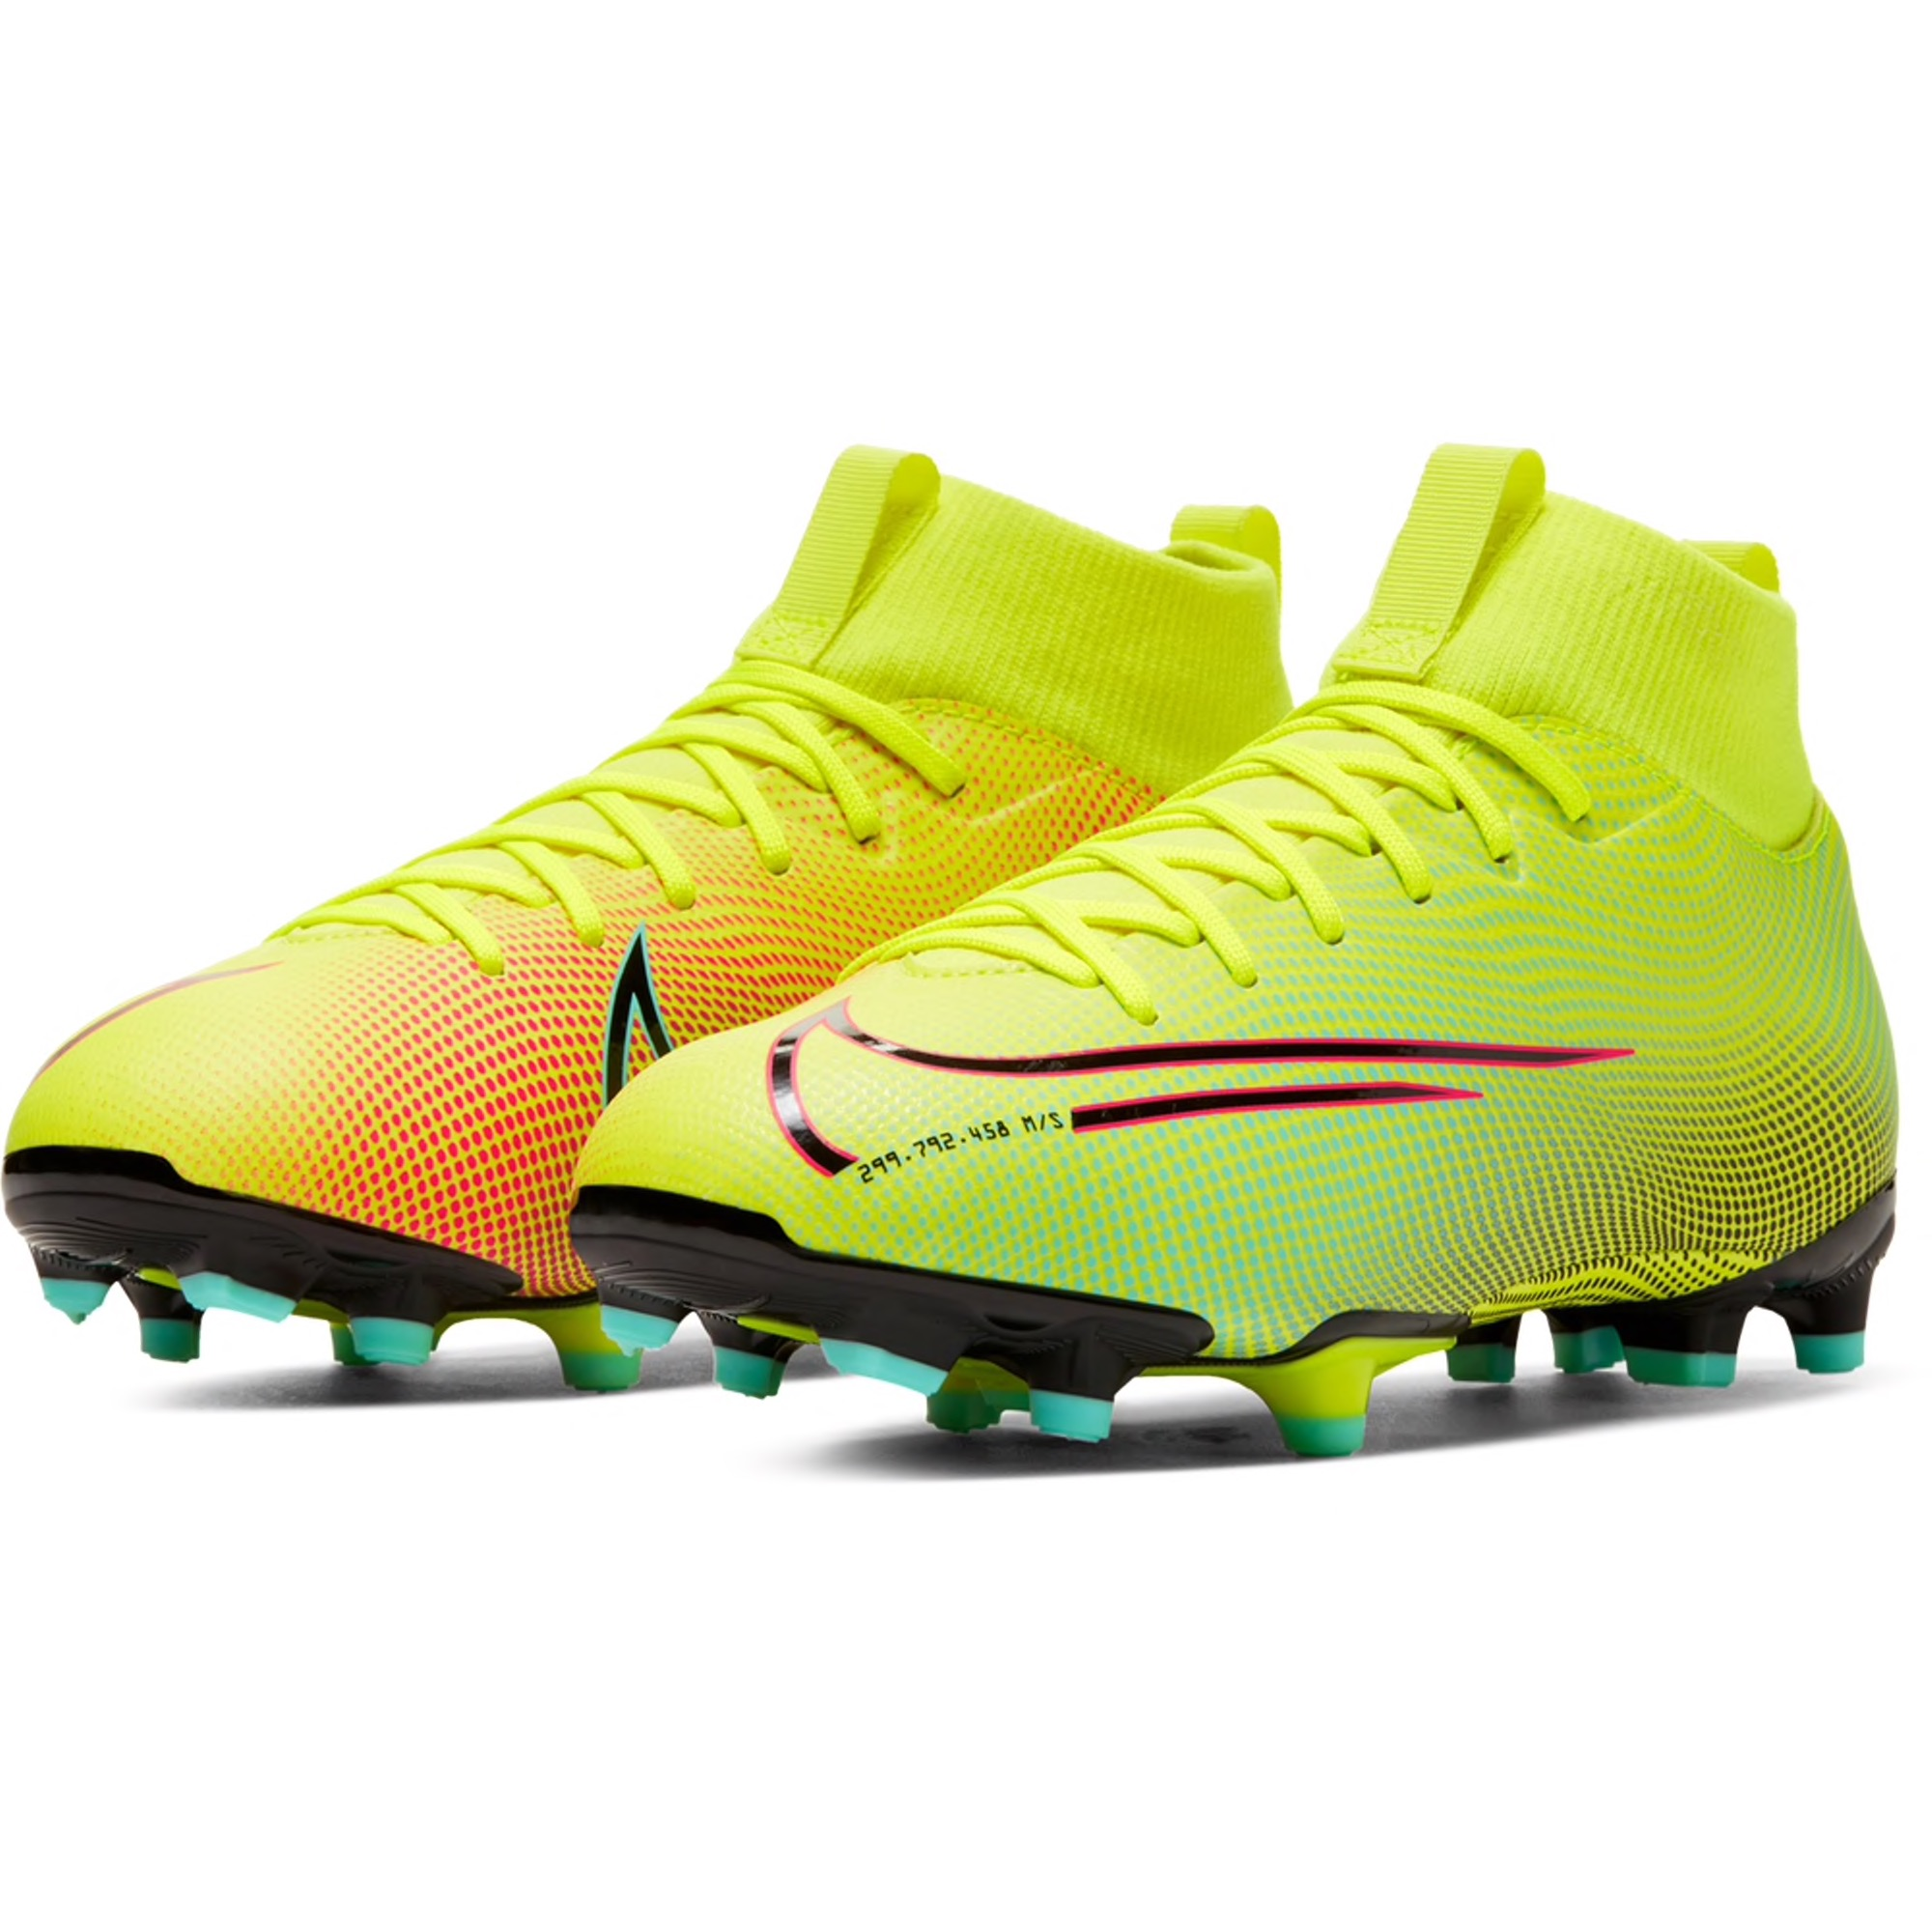 MERCURIAL superfly academy